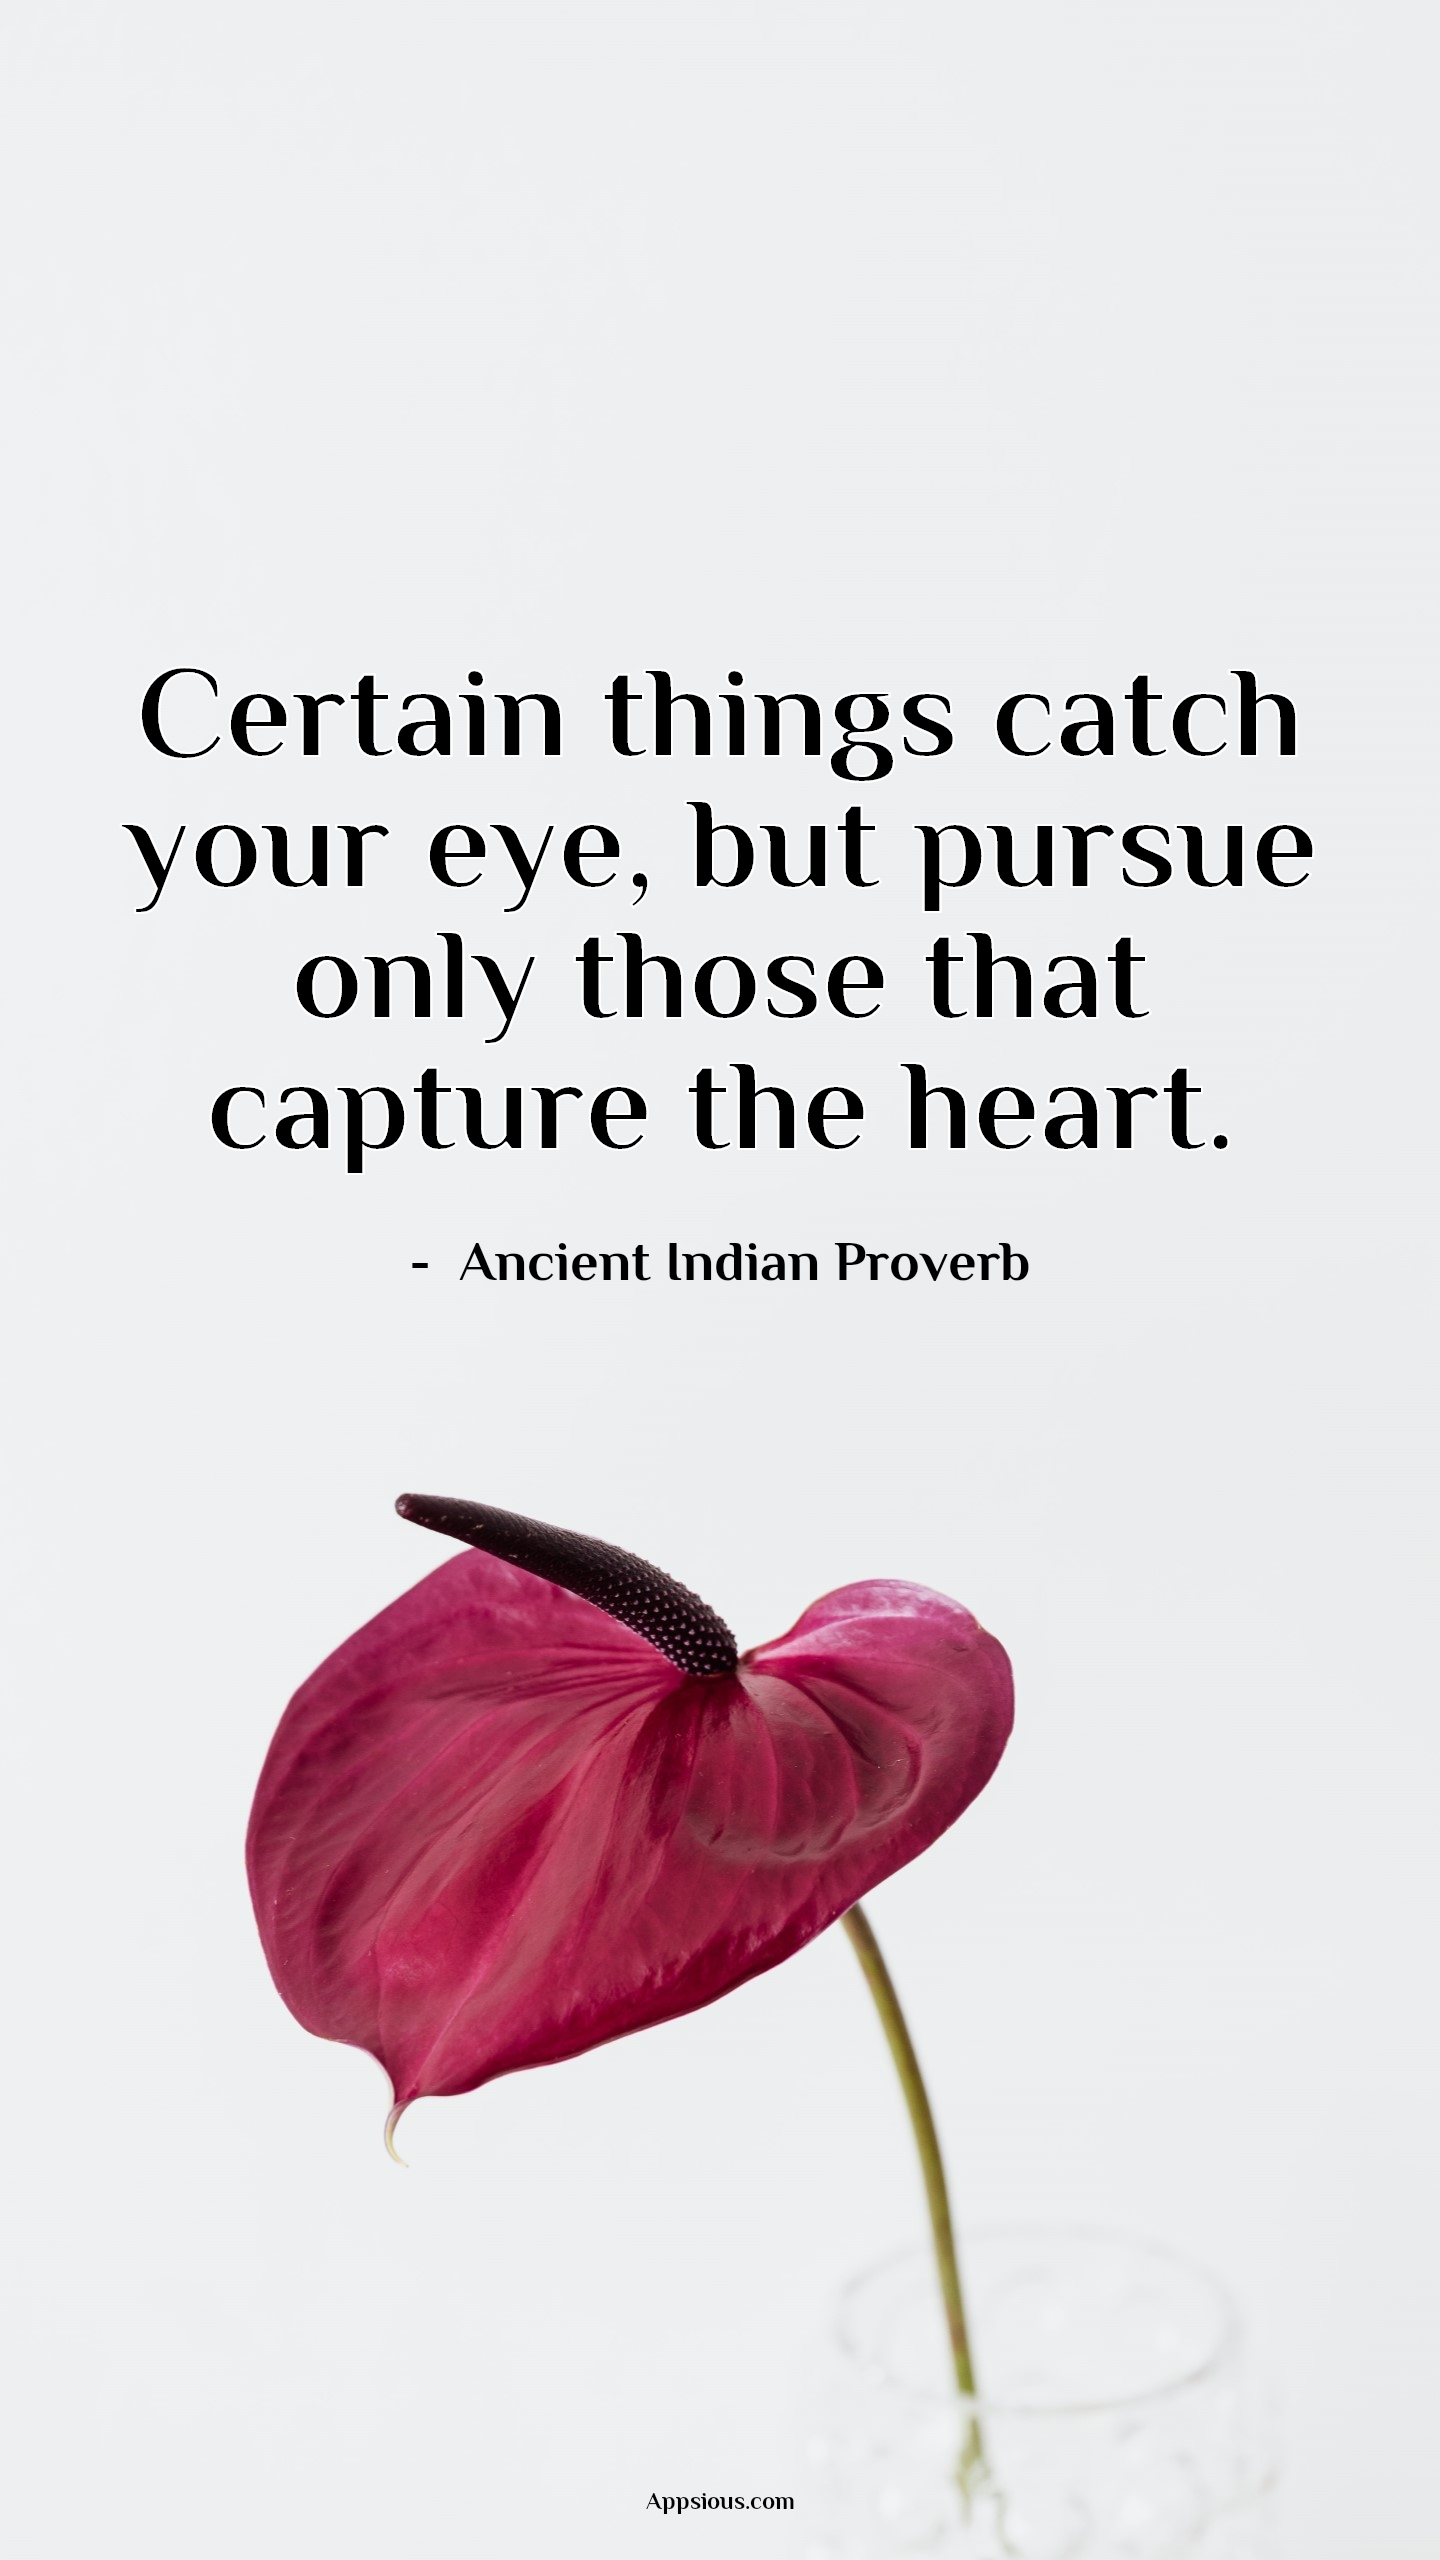 Certain things catch your eye, but pursue only those that capture the heart.